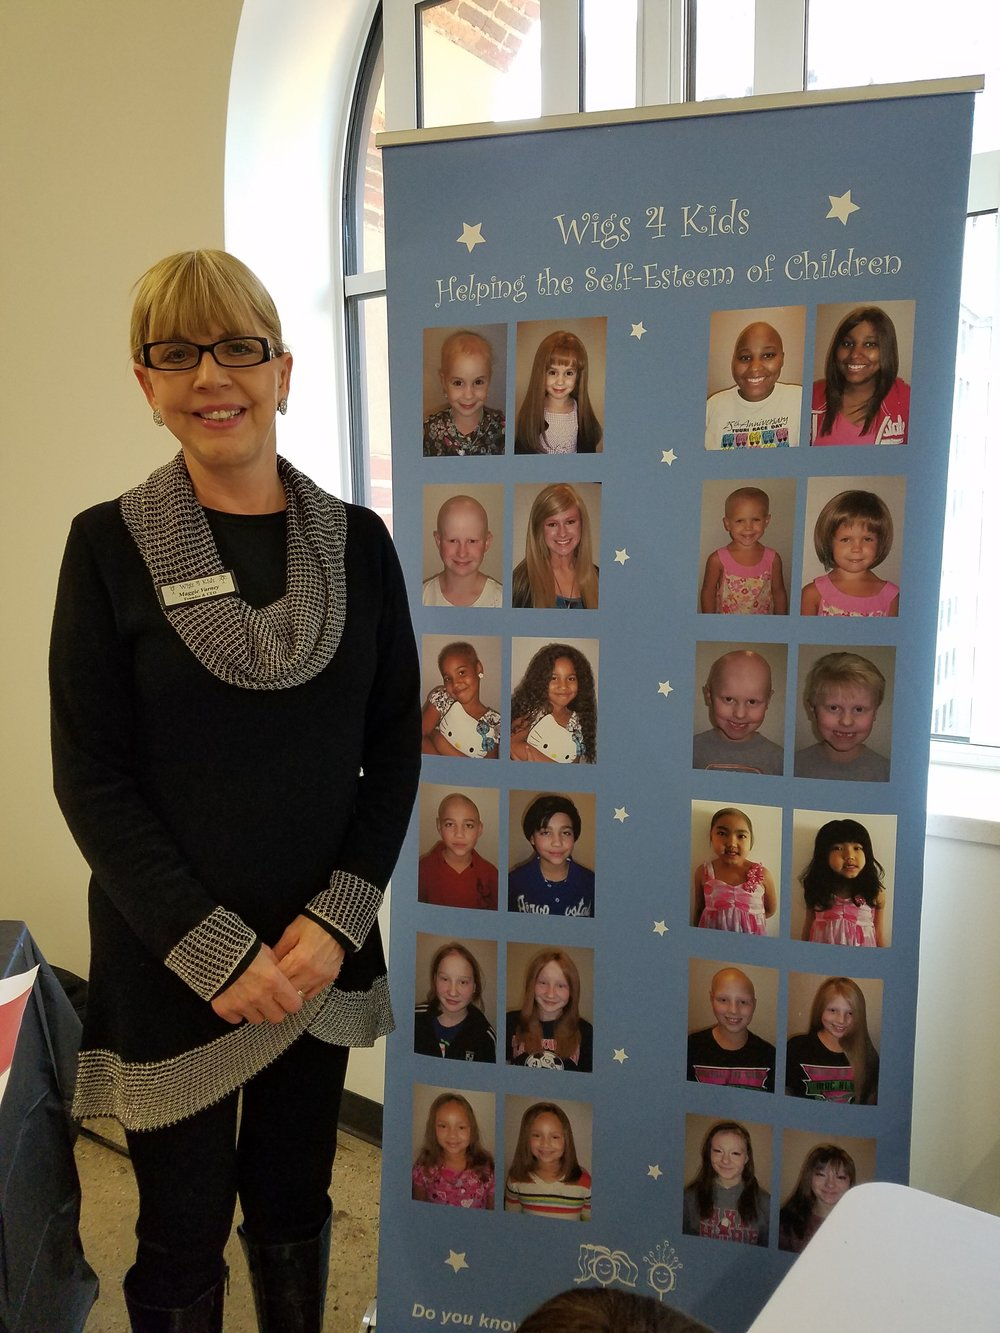 Maggie Varney, Founder/CEO Wigs 4 Kids